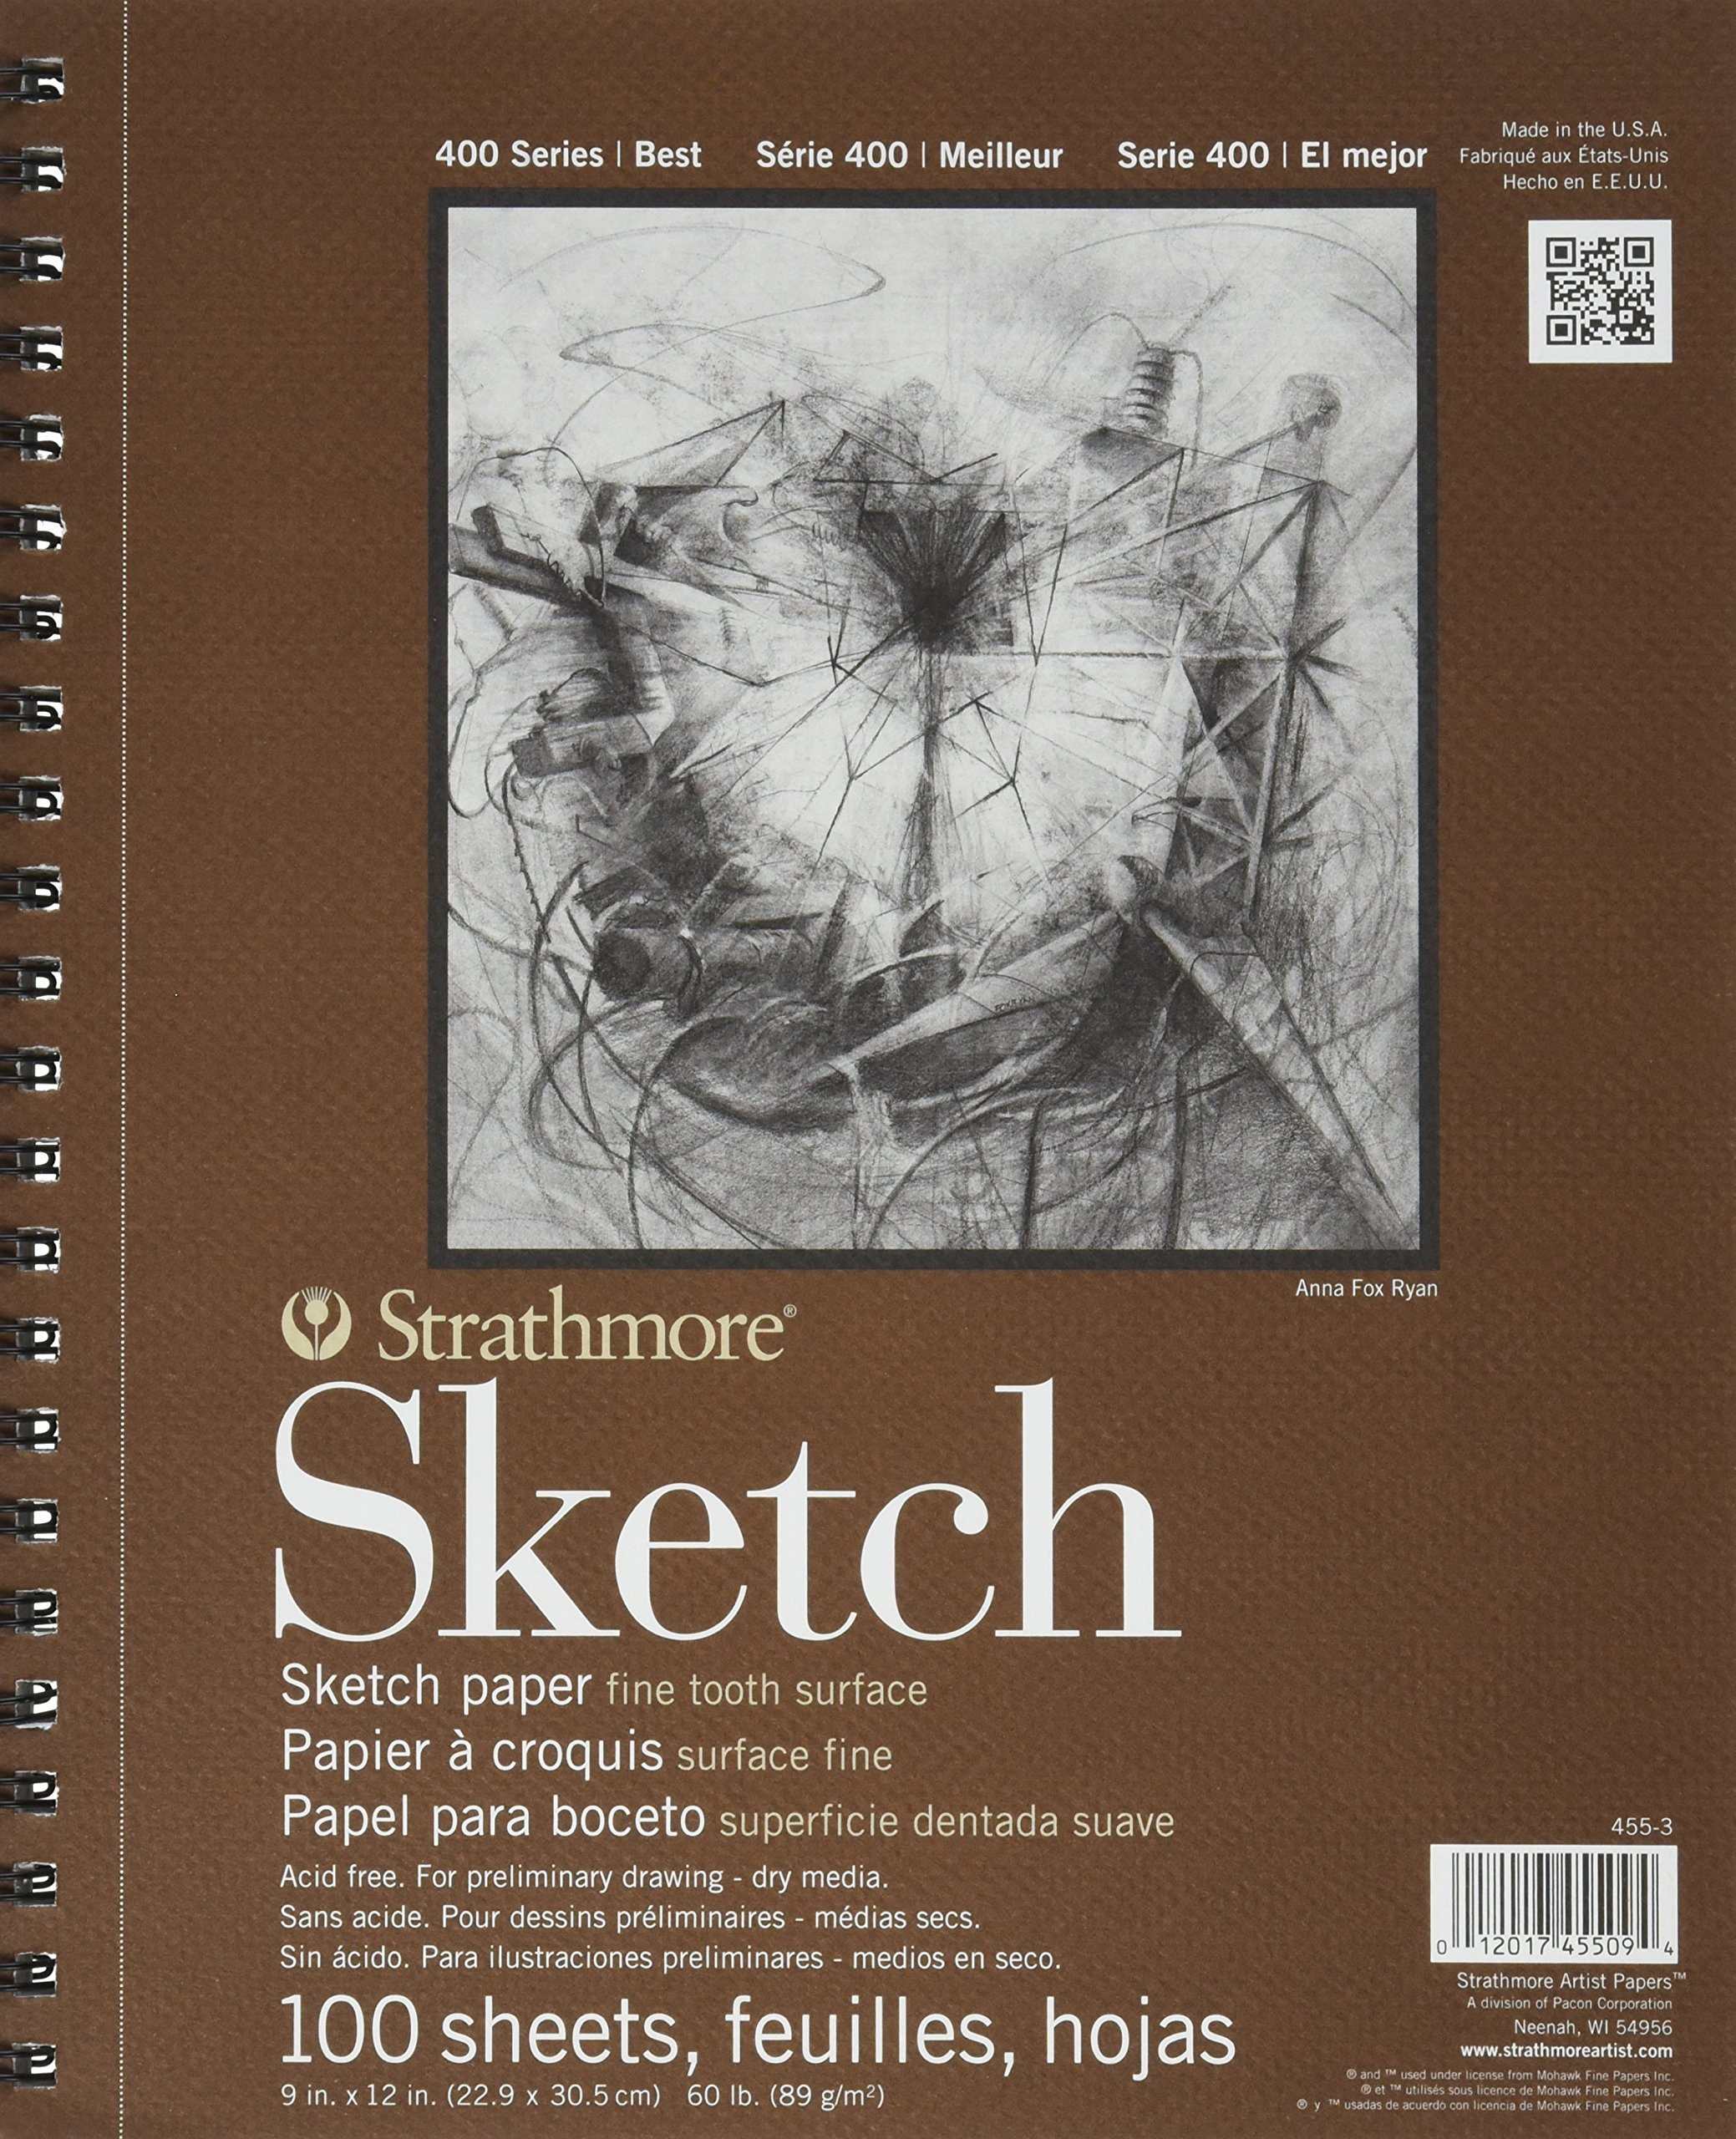 Strathmore SM455-3 455-3 Drawing & Sketch Paper, 6 Pack, White by Strathmore